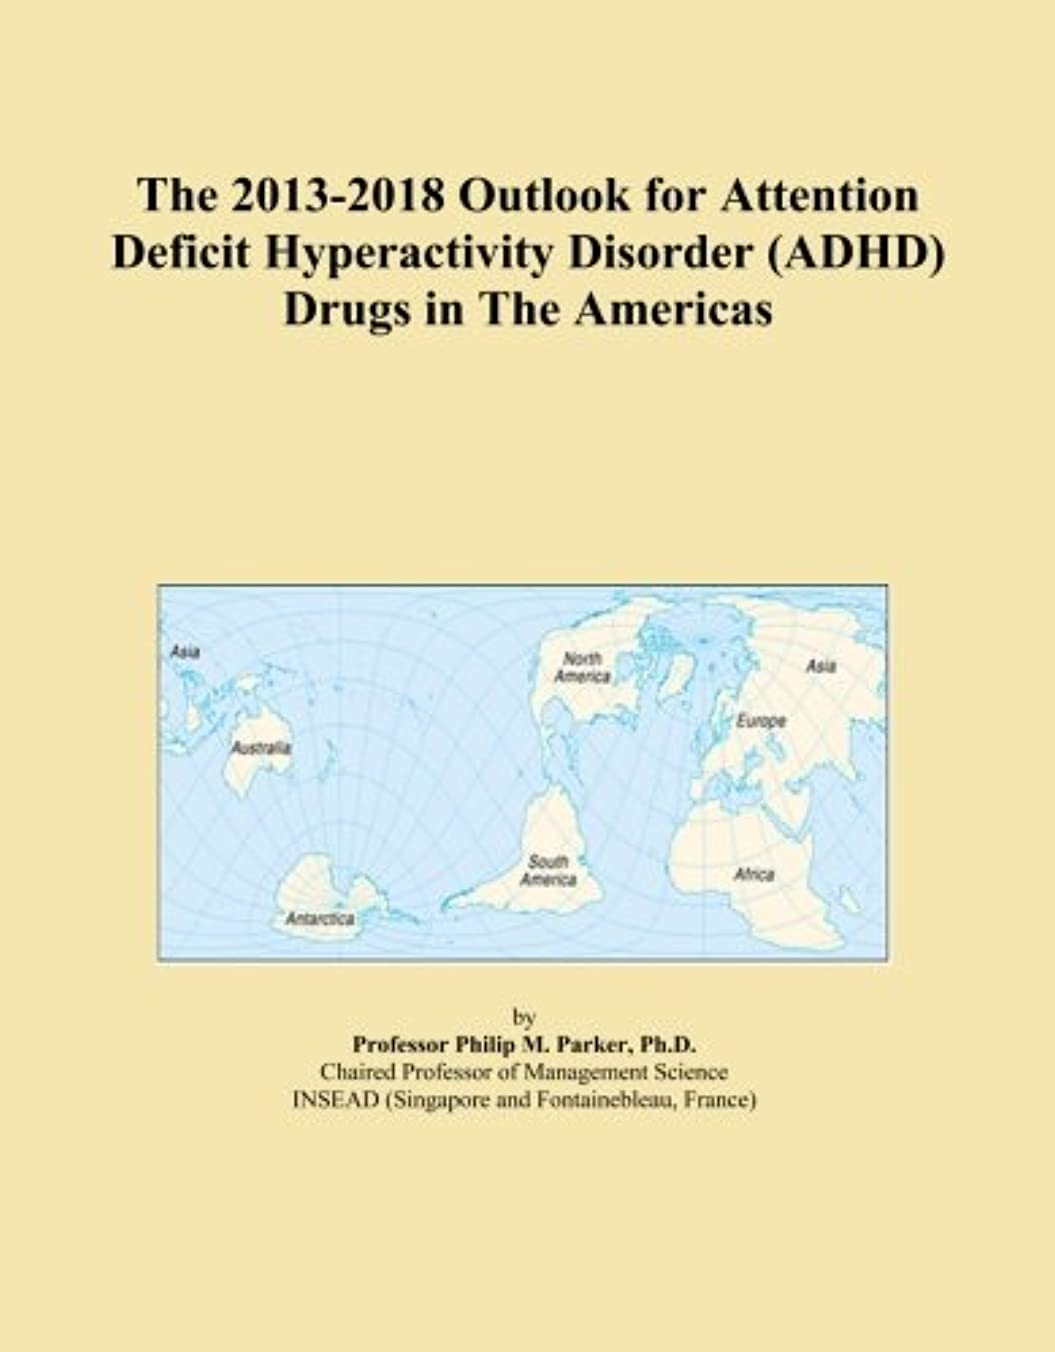 支払う湿った累計The 2013-2018 Outlook for Attention Deficit Hyperactivity Disorder (ADHD) Drugs in The Americas